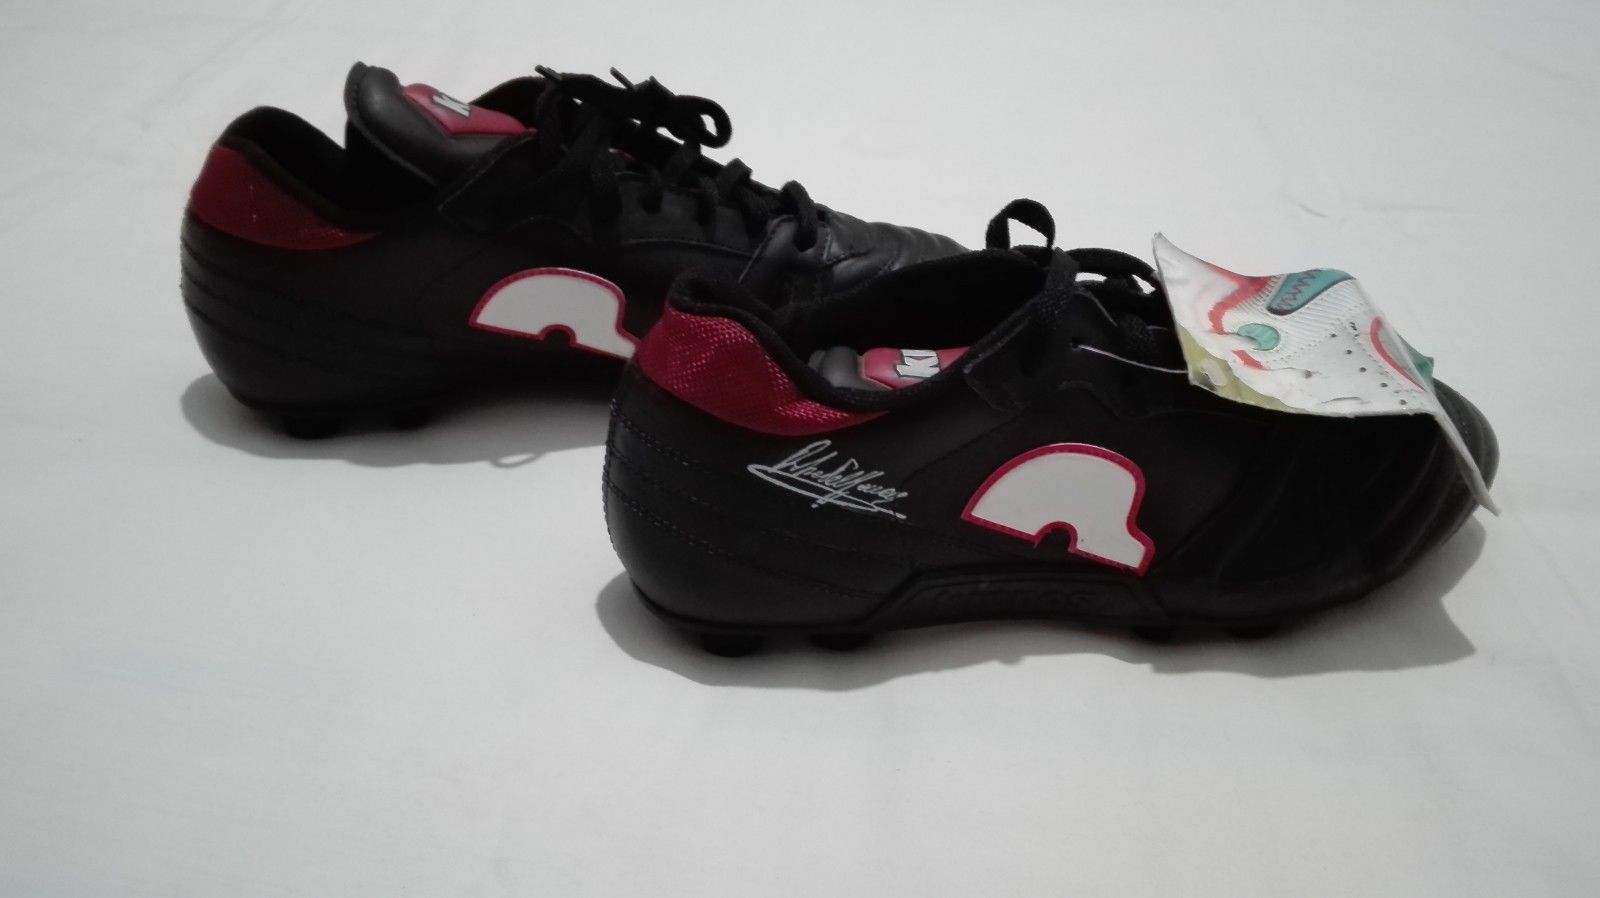 hot sale online 72eb1 aa3a0 KRONOS Roberto Mancini signed 90s vintage soccer boots football shoes ,size  9.5  eBay